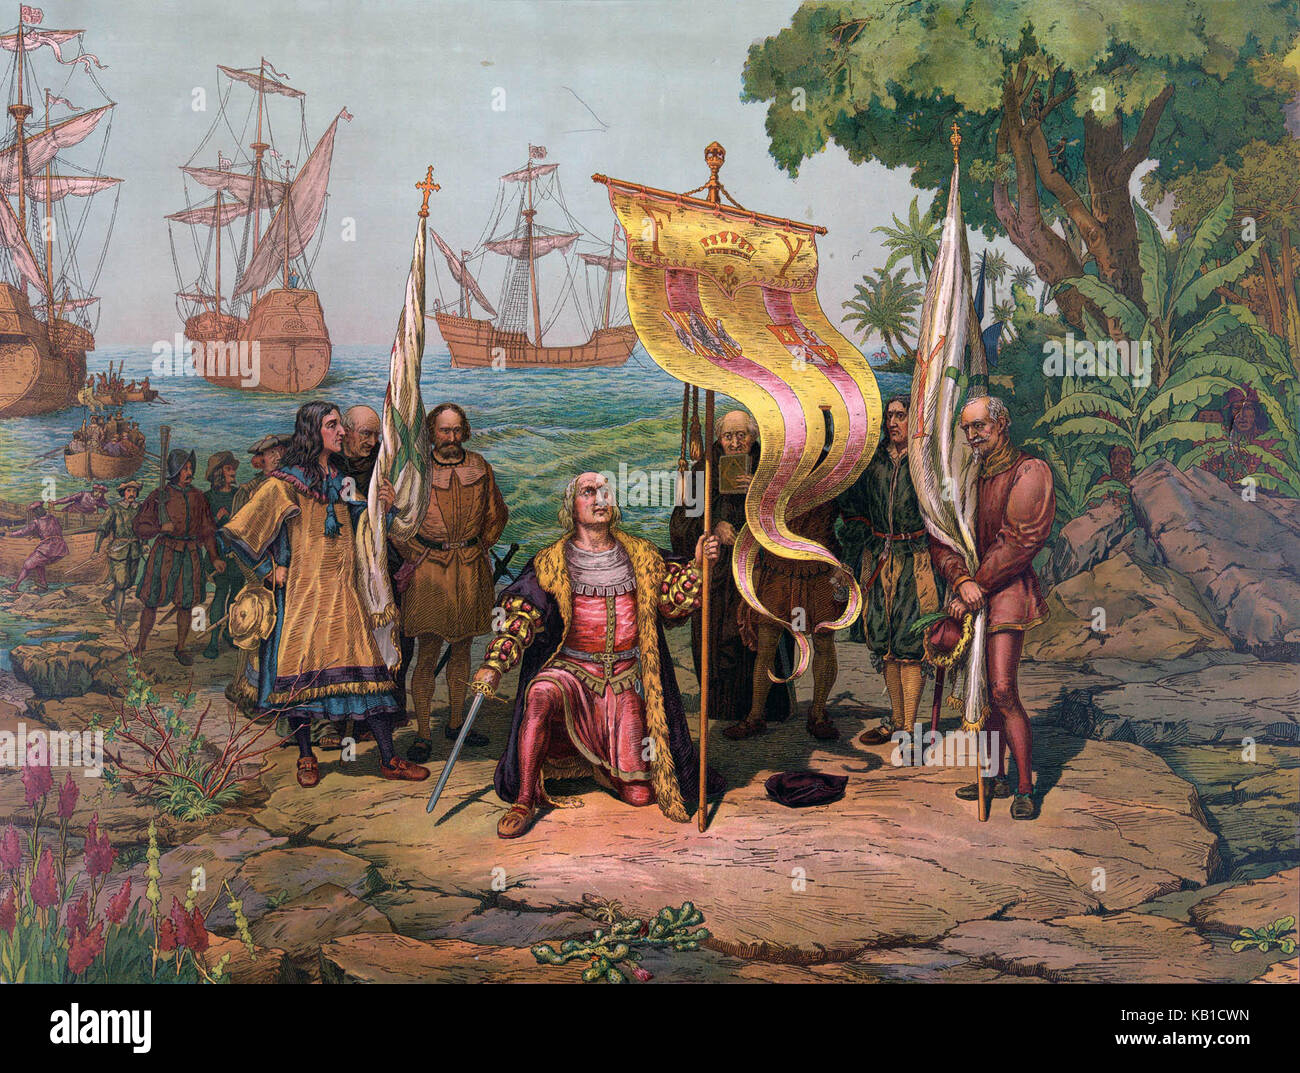 an introduction to the discovery of america in 1492 He discovered the americas for spain  he set sail on august 3, 1492 with three ships named the nina, the pinta, and the santa maria the voyage was long.